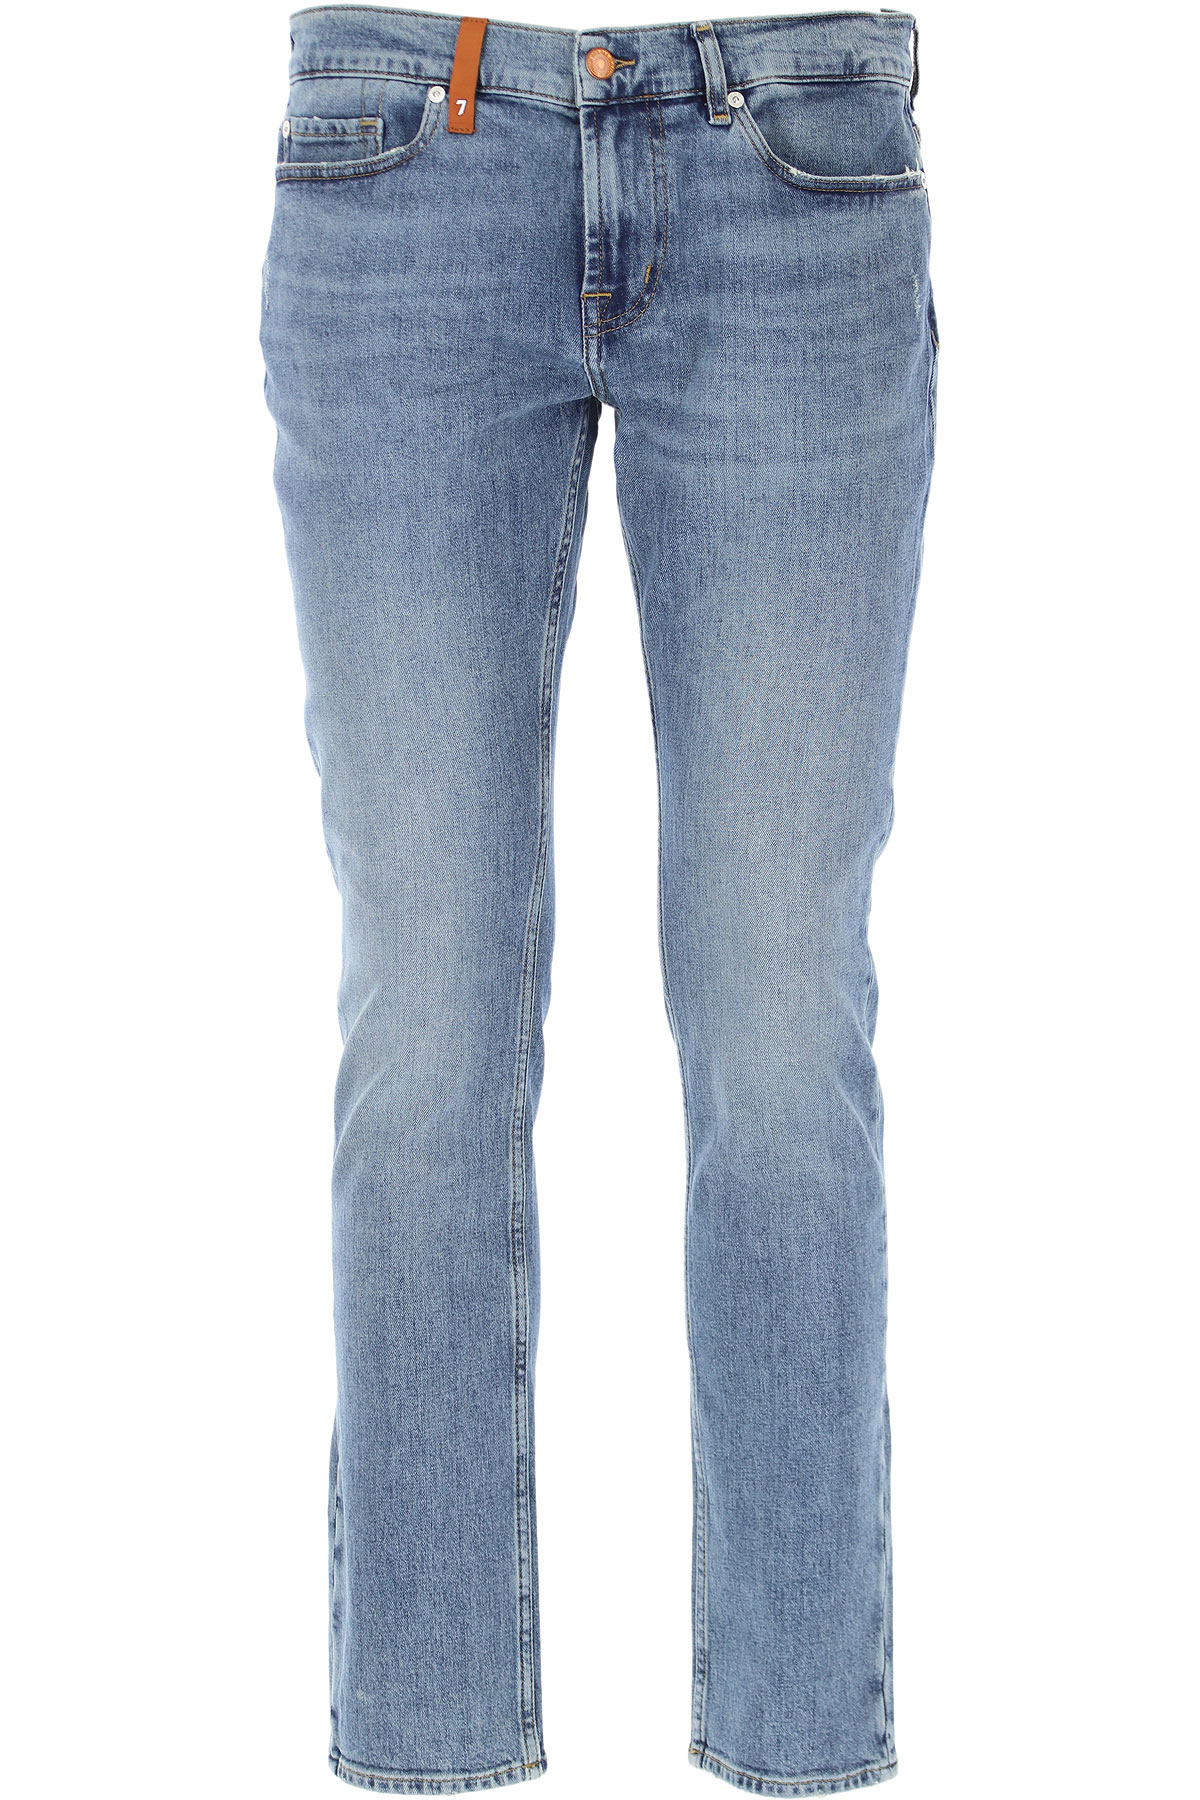 Seven For All Mankind Jeans, Denim, Cotton, 2019, 29 30 31 32 33 34